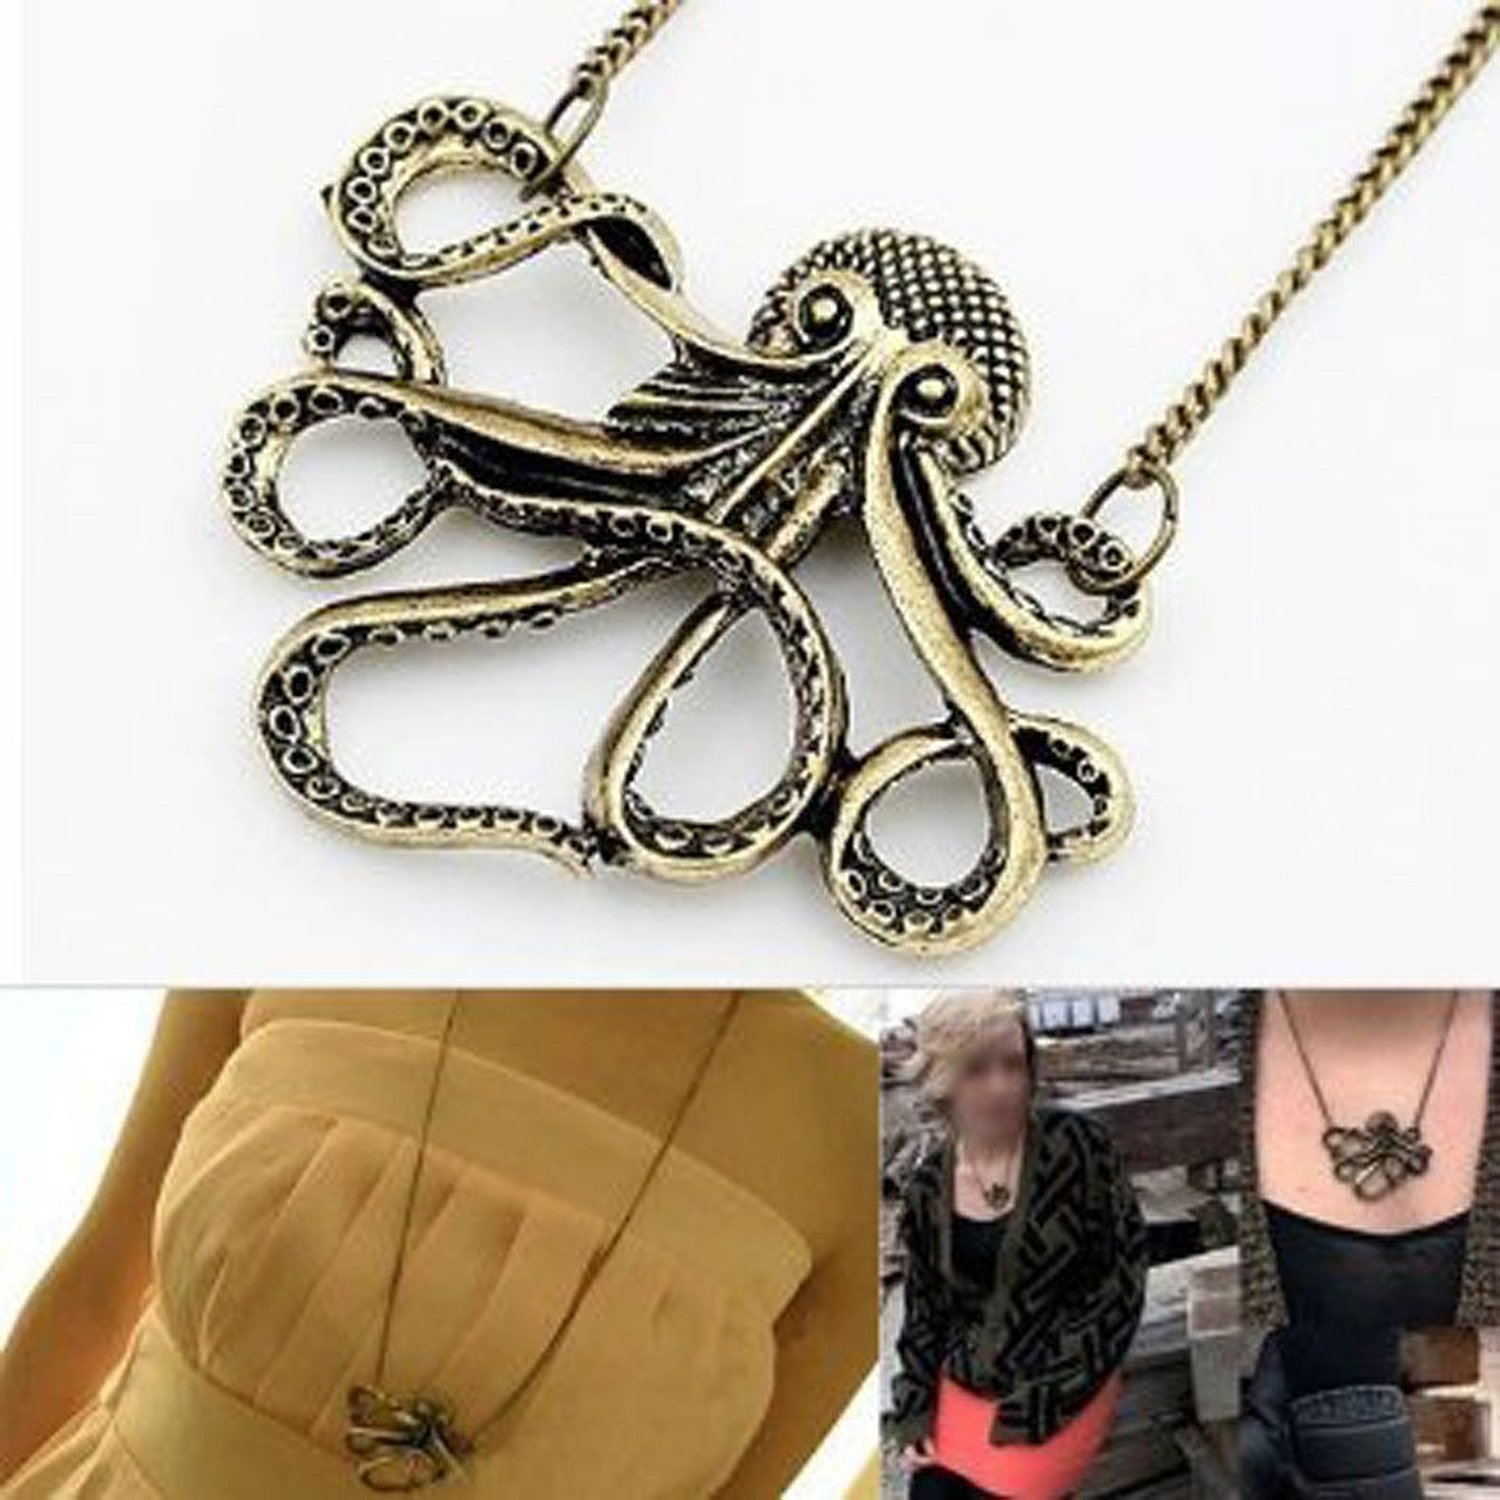 octopus trinket products necklace pendant paradise